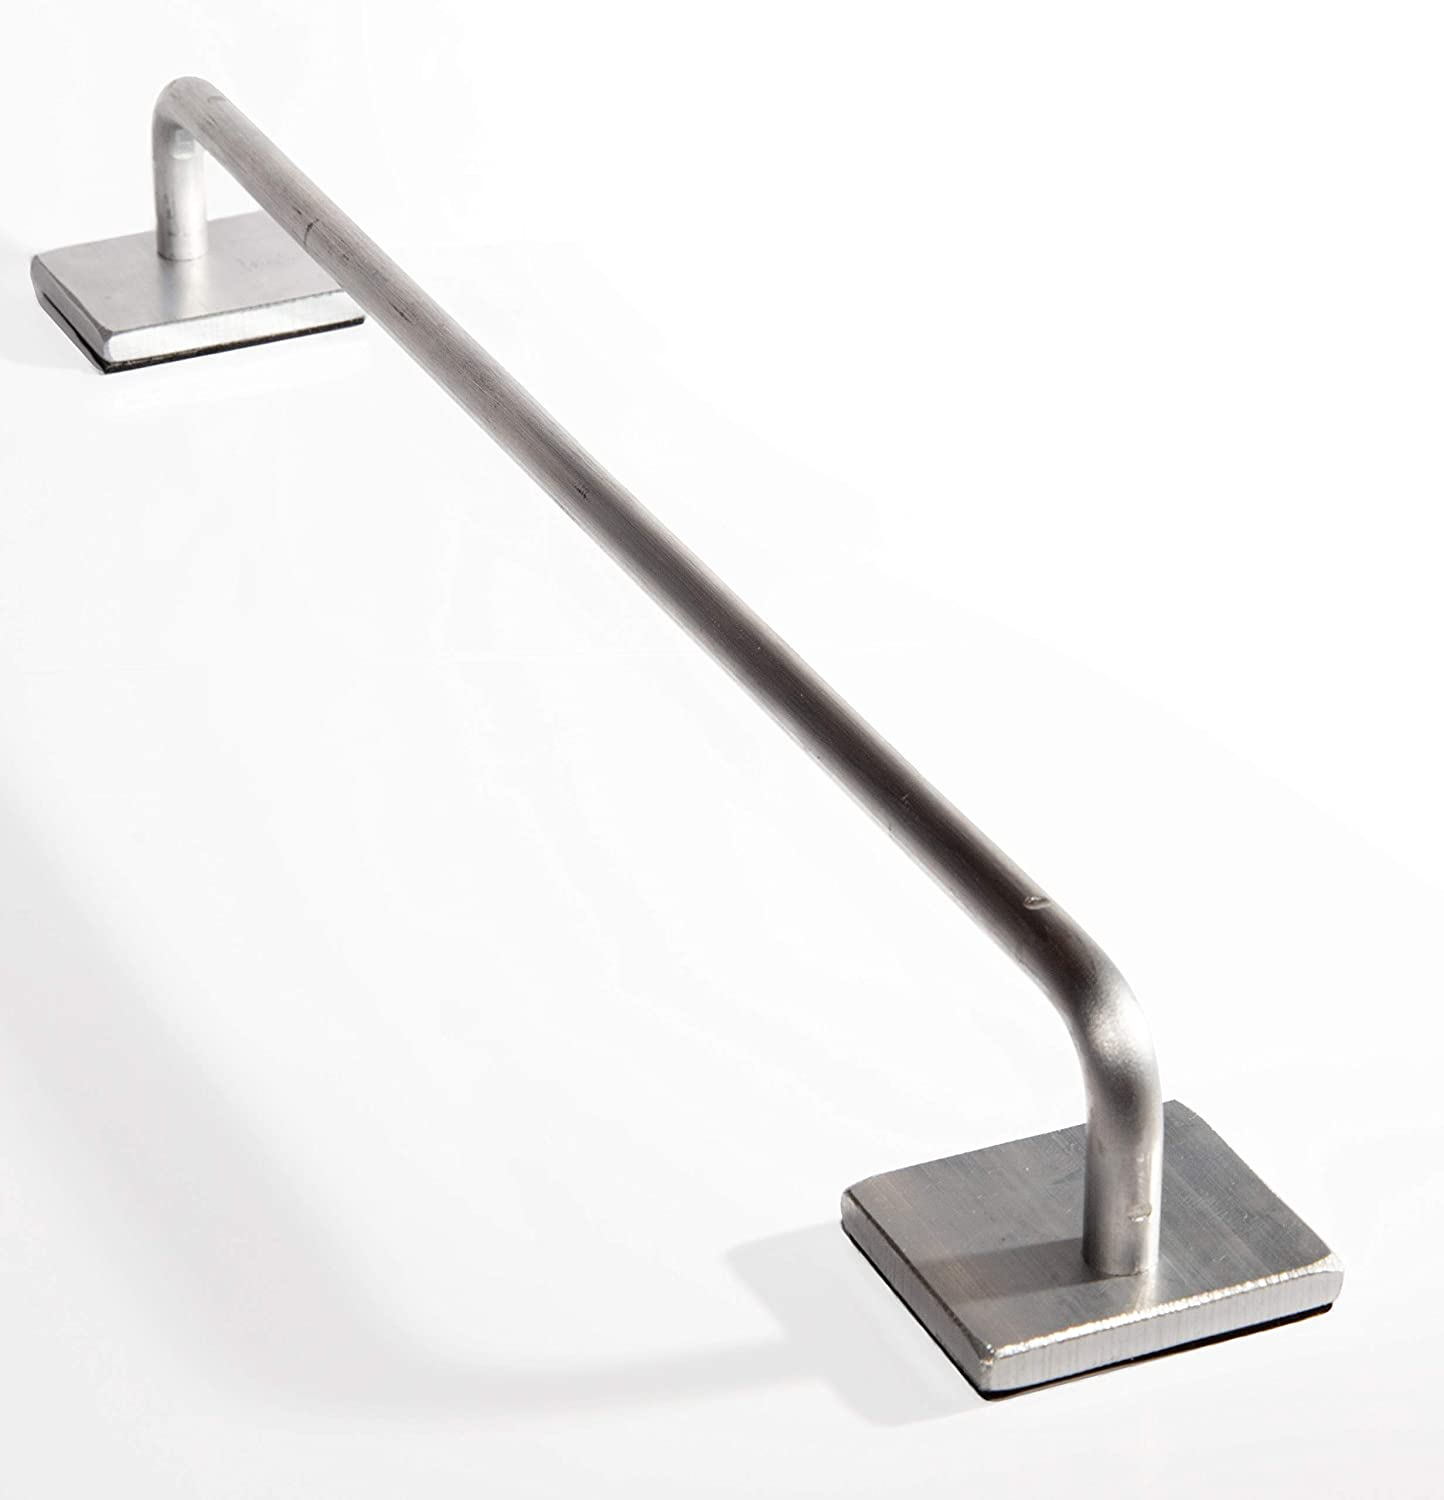 Metal Fingerboard Rails (Large Straight) Handmade in The USA for Your Fingerboard ramps and Parks